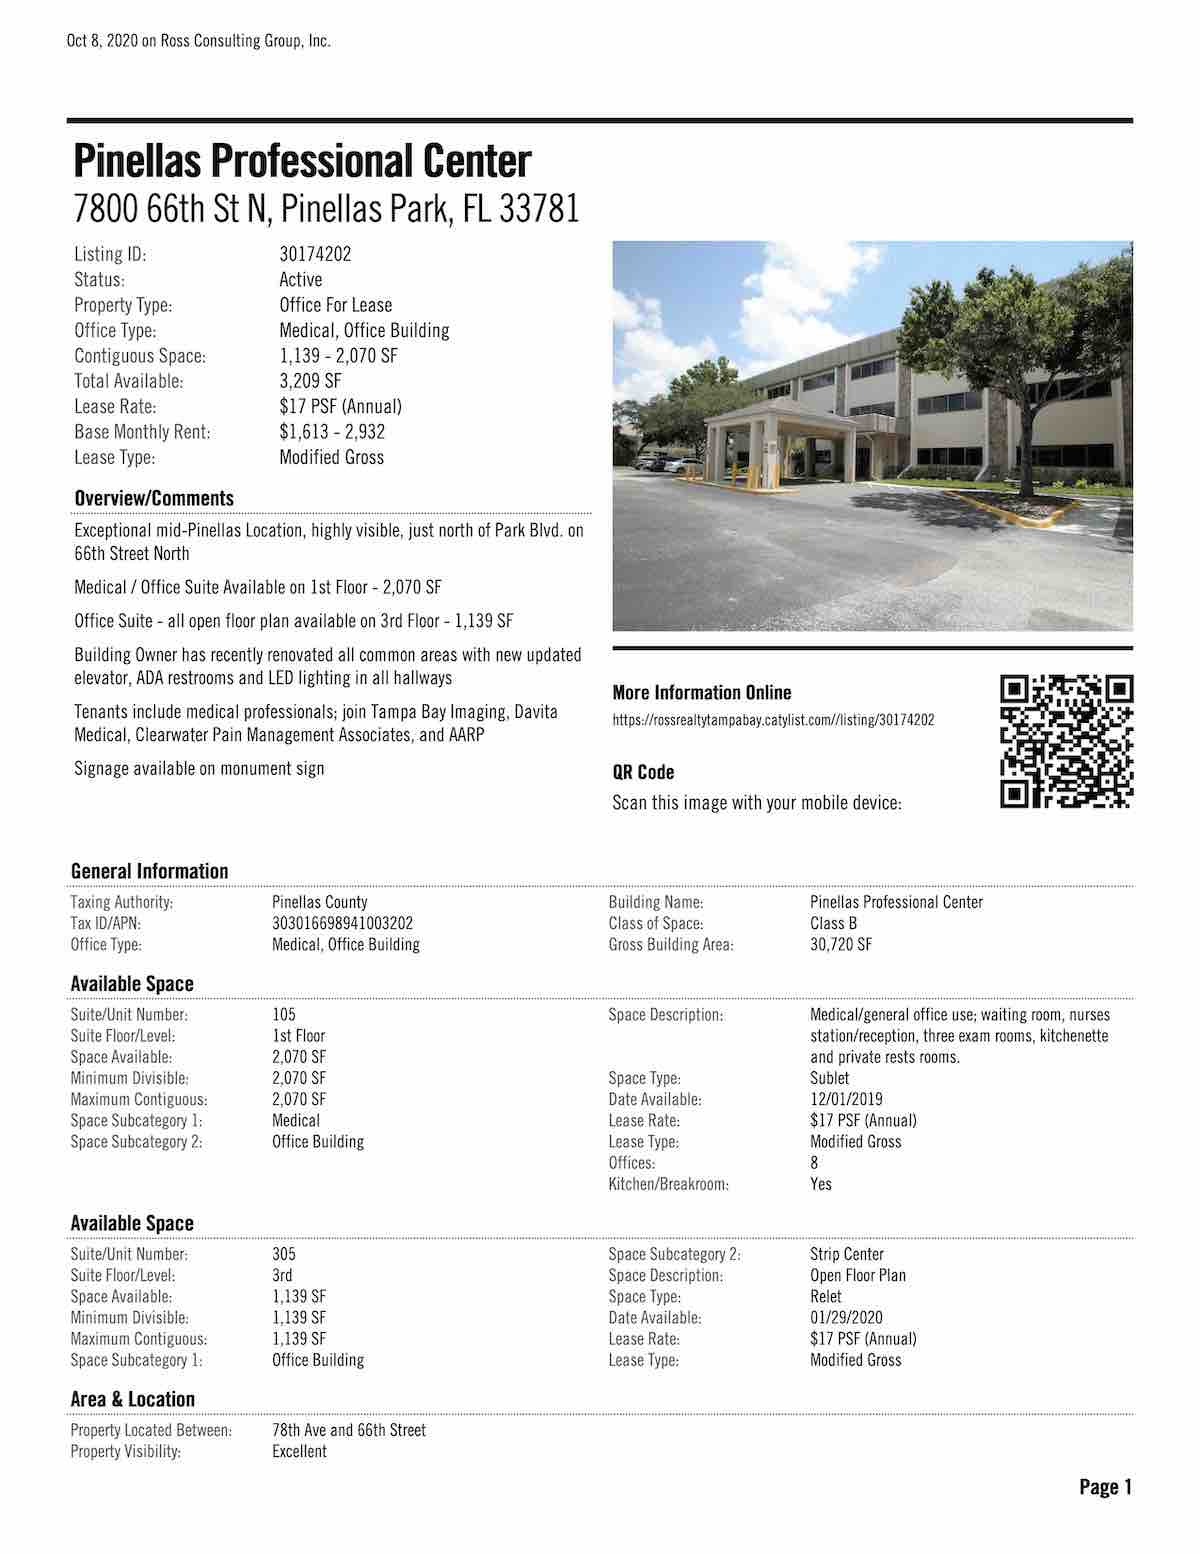 FOR LEASE - Pinellas Professional Center - 7800 66th St N, Pinellas Park, FL 33781 P1